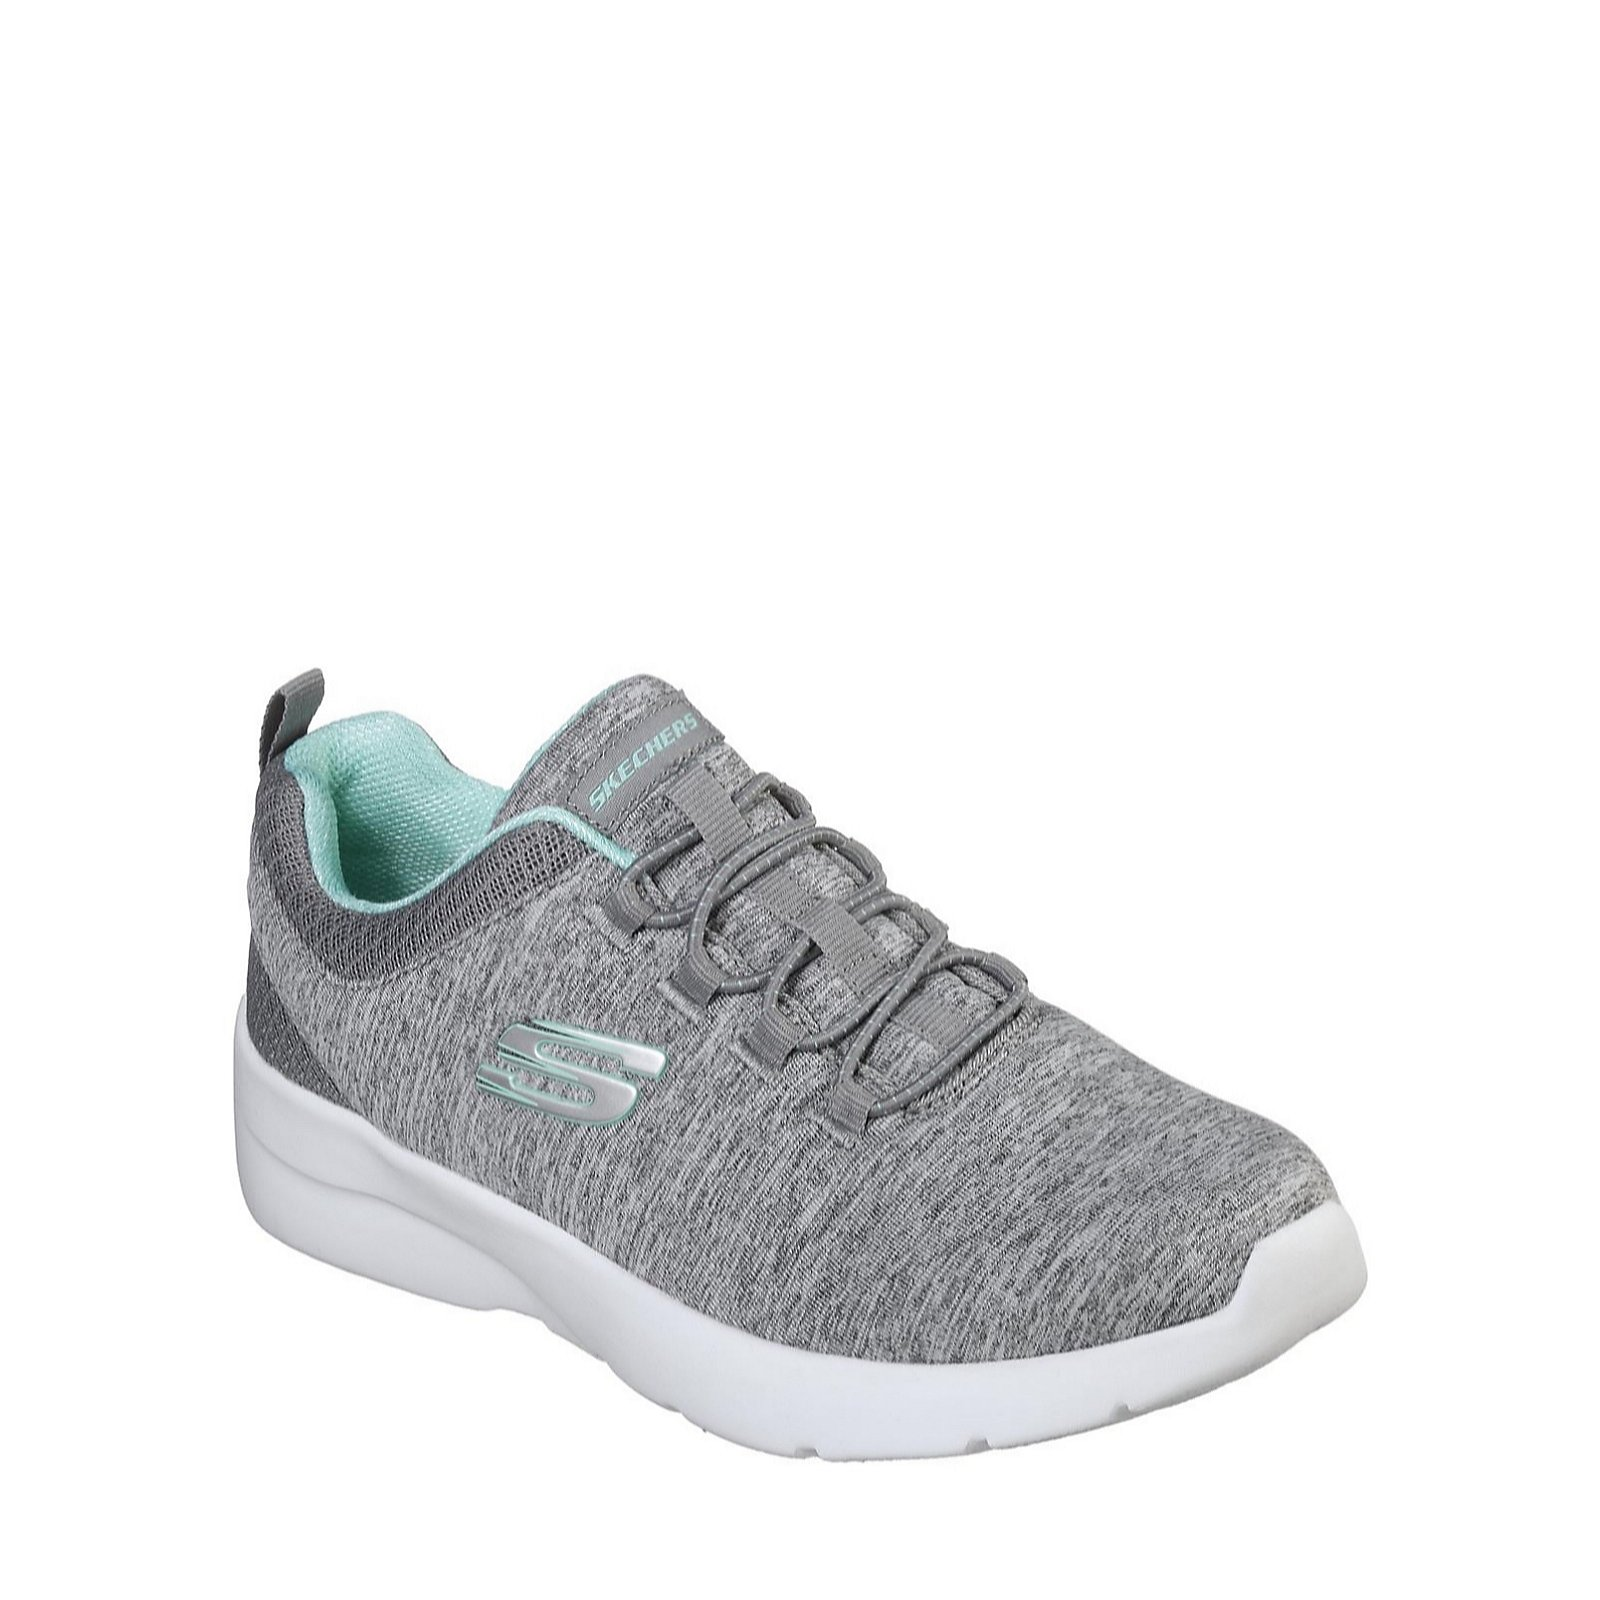 Adiccion Cartas credenciales Antibióticos  Outlet Skechers Dynamite Bungee Mesh Slip On Trainer - QVC UK